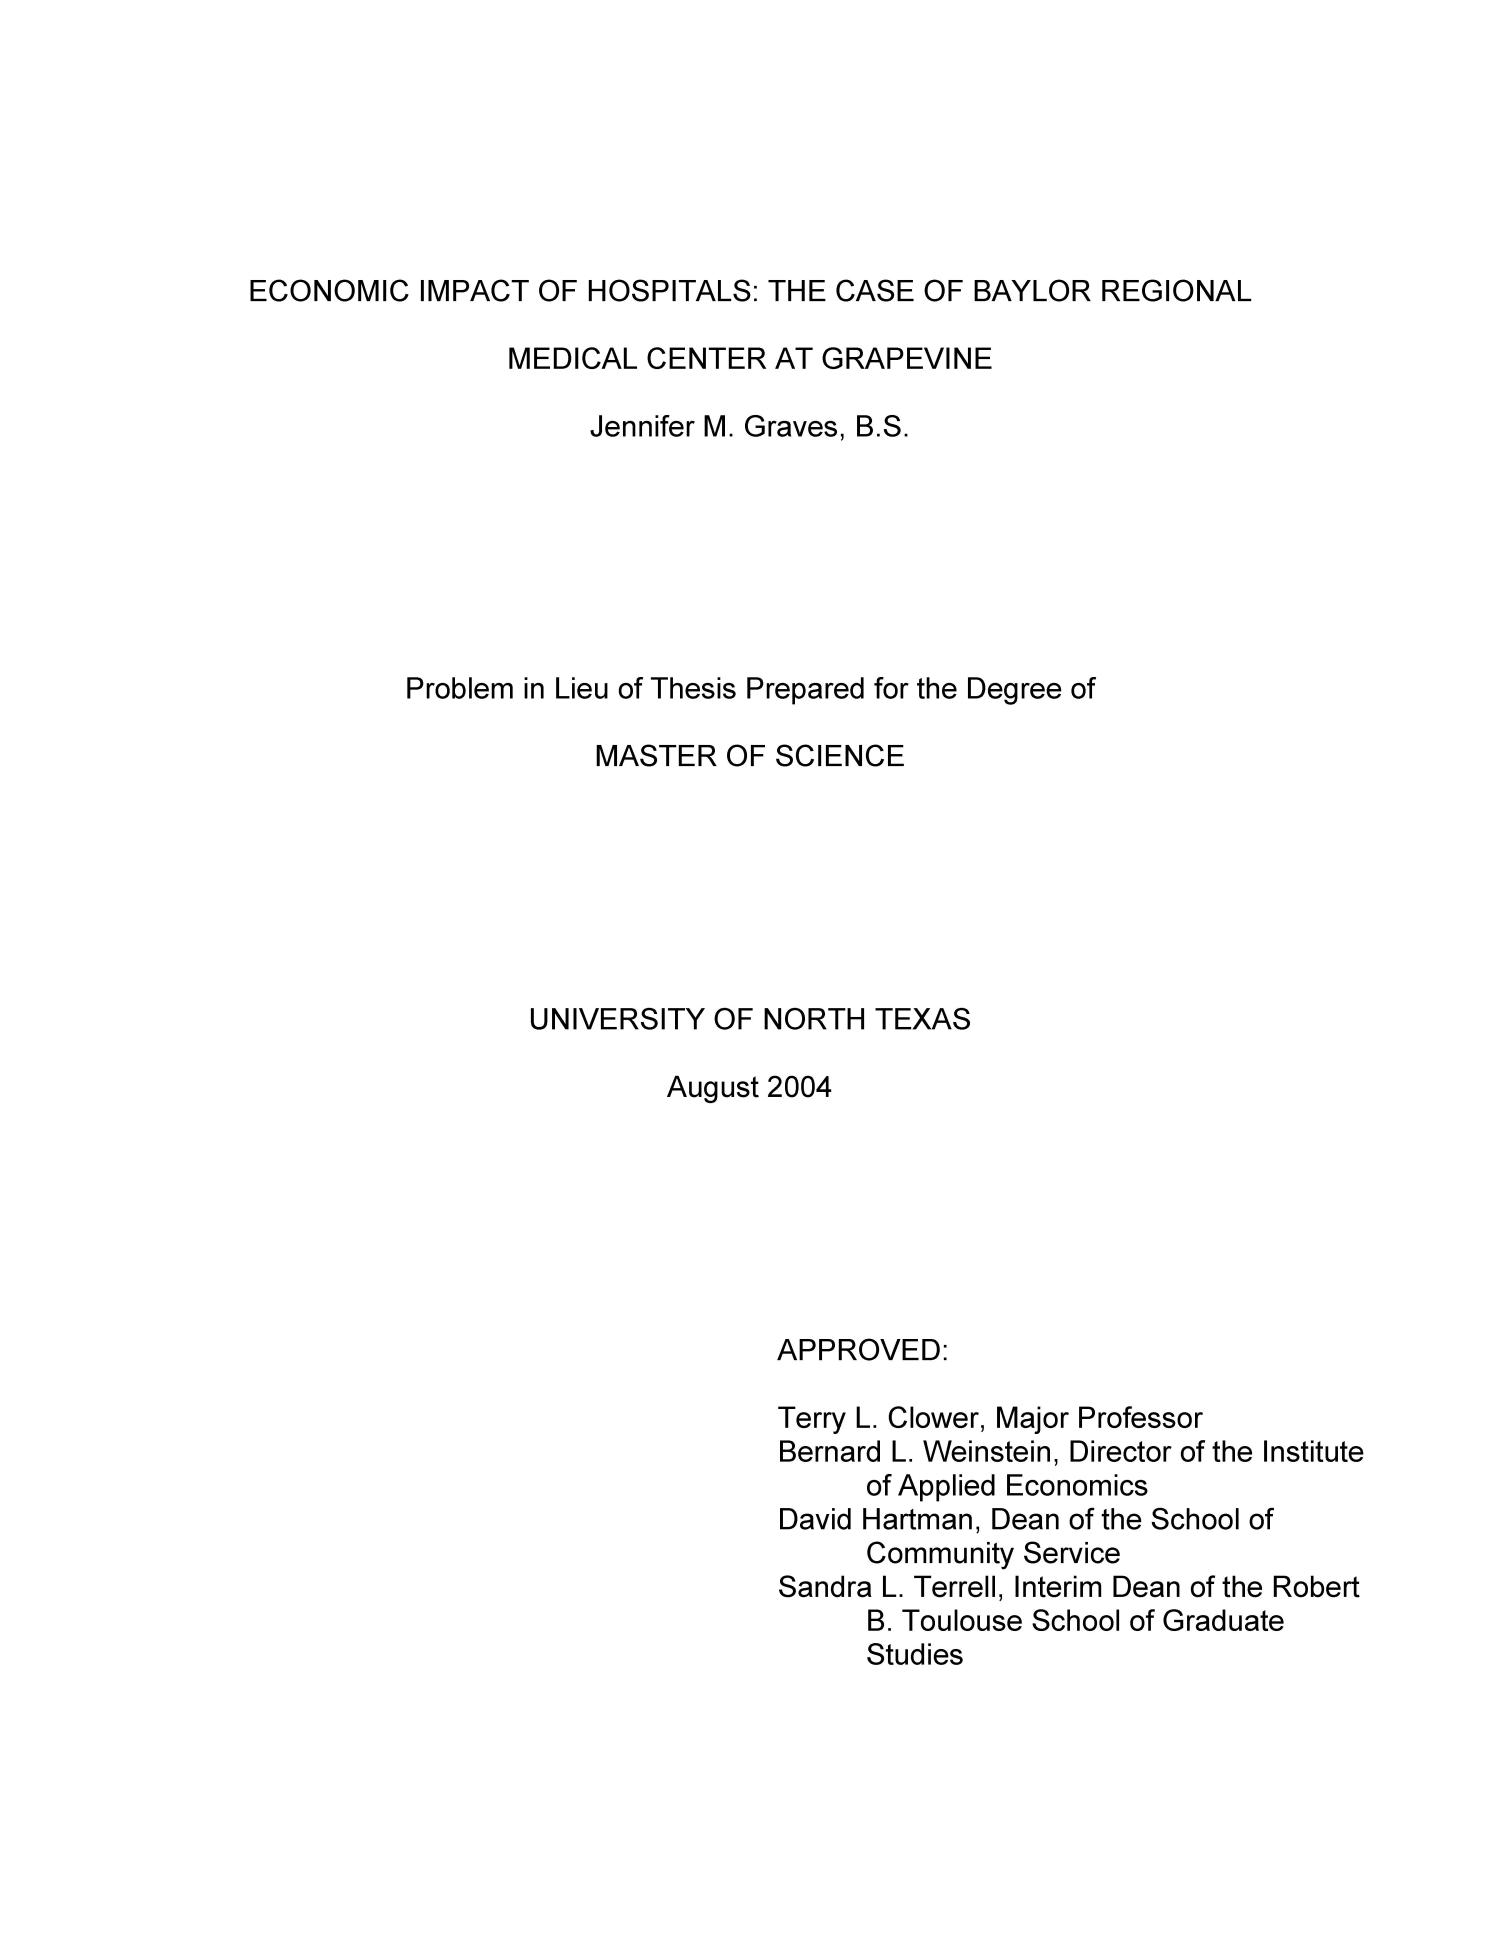 Financial development and economic growth thesis proposal Tufts University  Graduate Programs The Balance between Industry and aploon